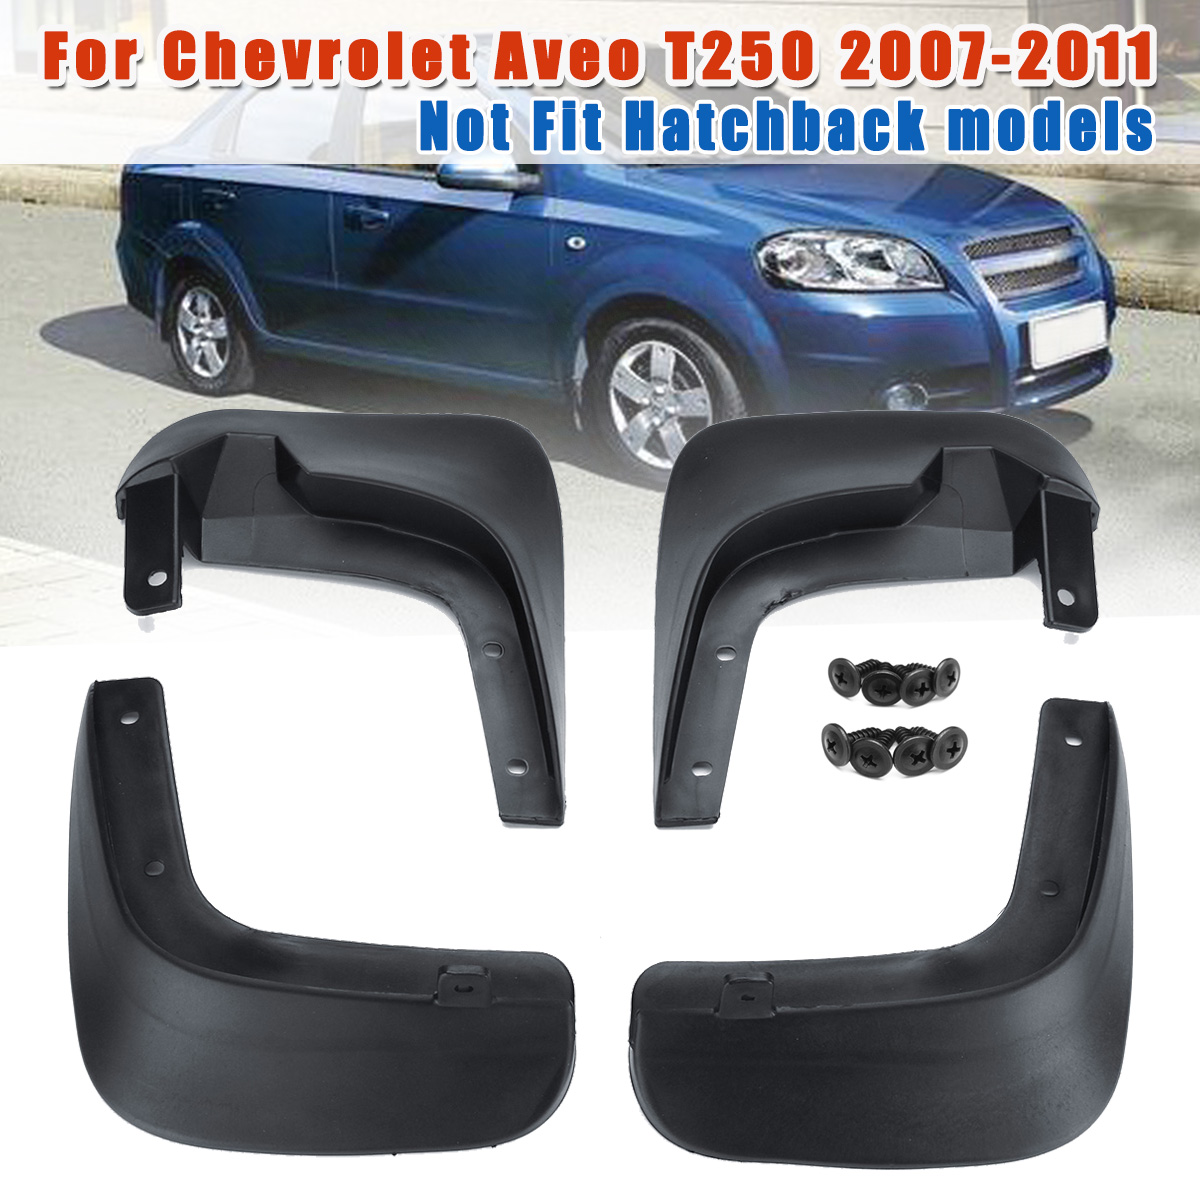 for Chevrolet Aveo T250 2007 2008 2009 2010 2011 Car Mud Flaps Front Rear Fender Flares Auto Mudflaps Mudguards Splash Guard